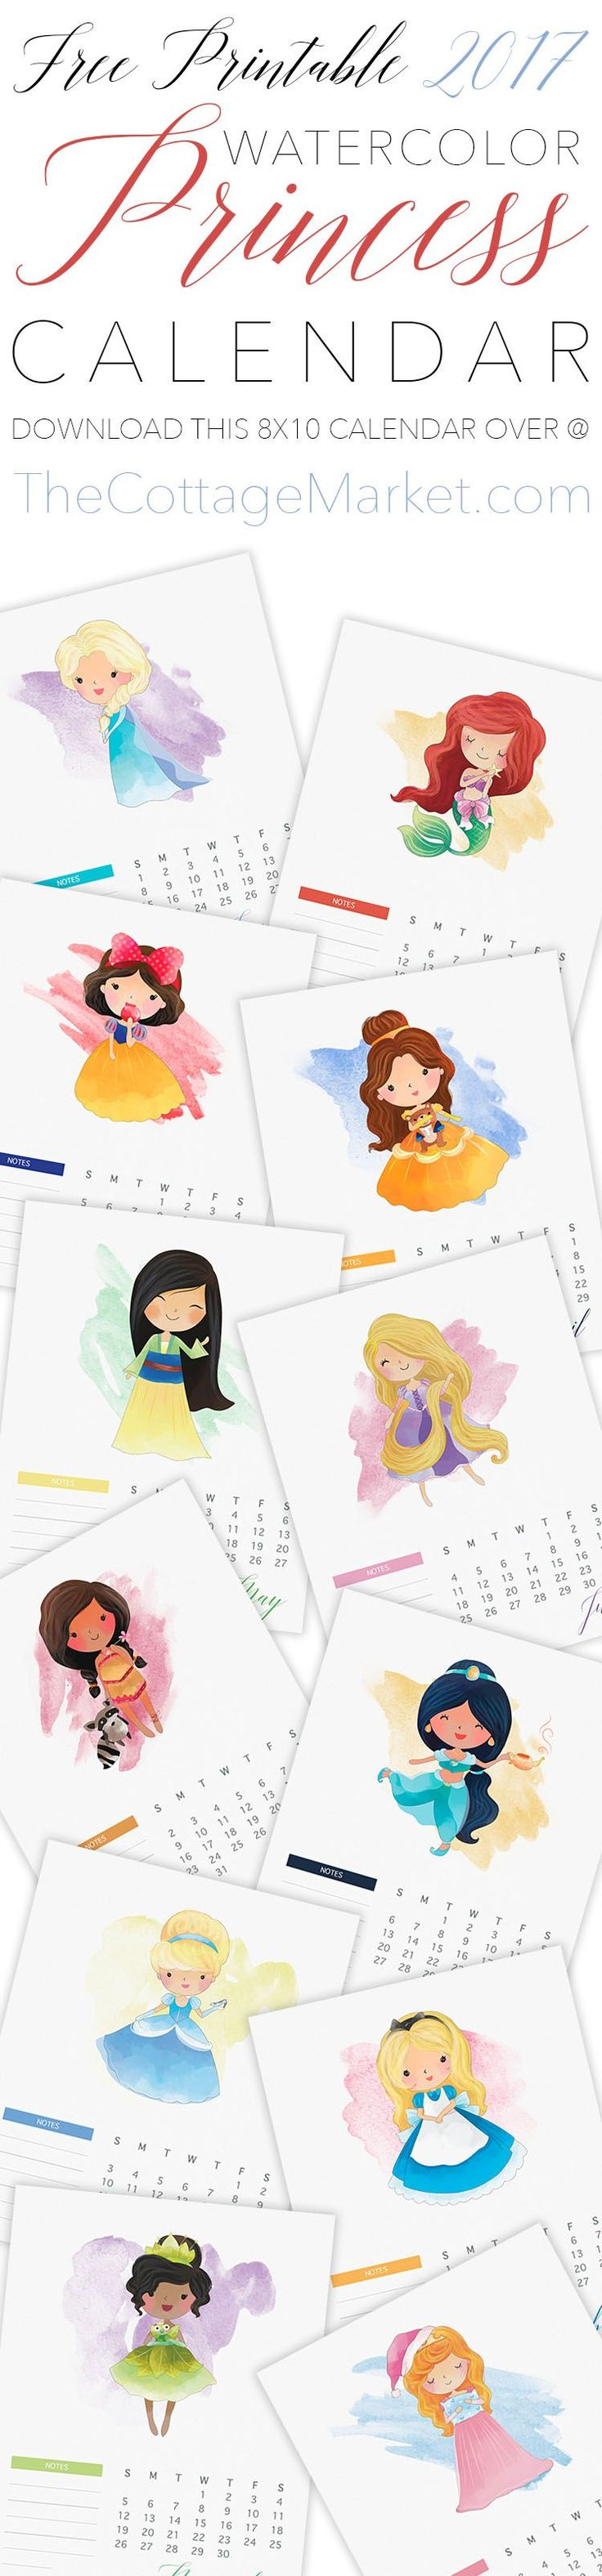 Free Printable 2017 Watercolor Princess Calendar! / Calendarios Princesas 2017